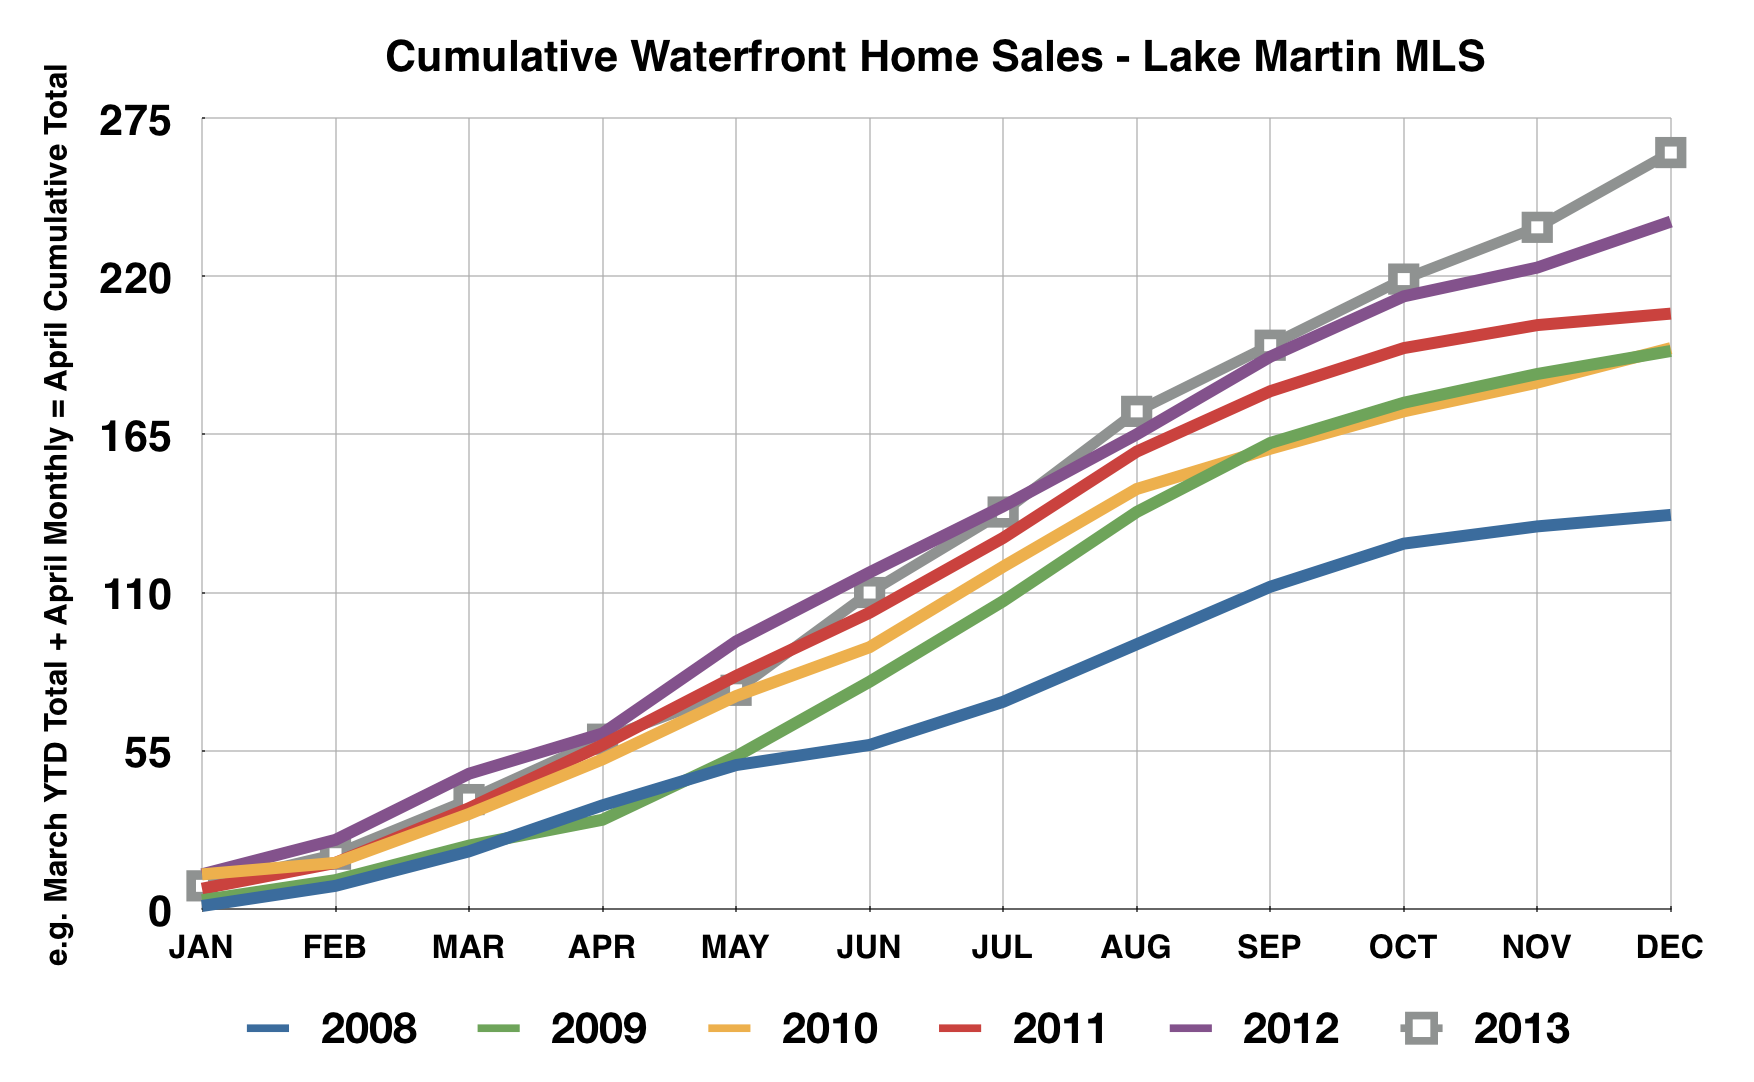 lake martin alabama waterfront home sales 2013 chart